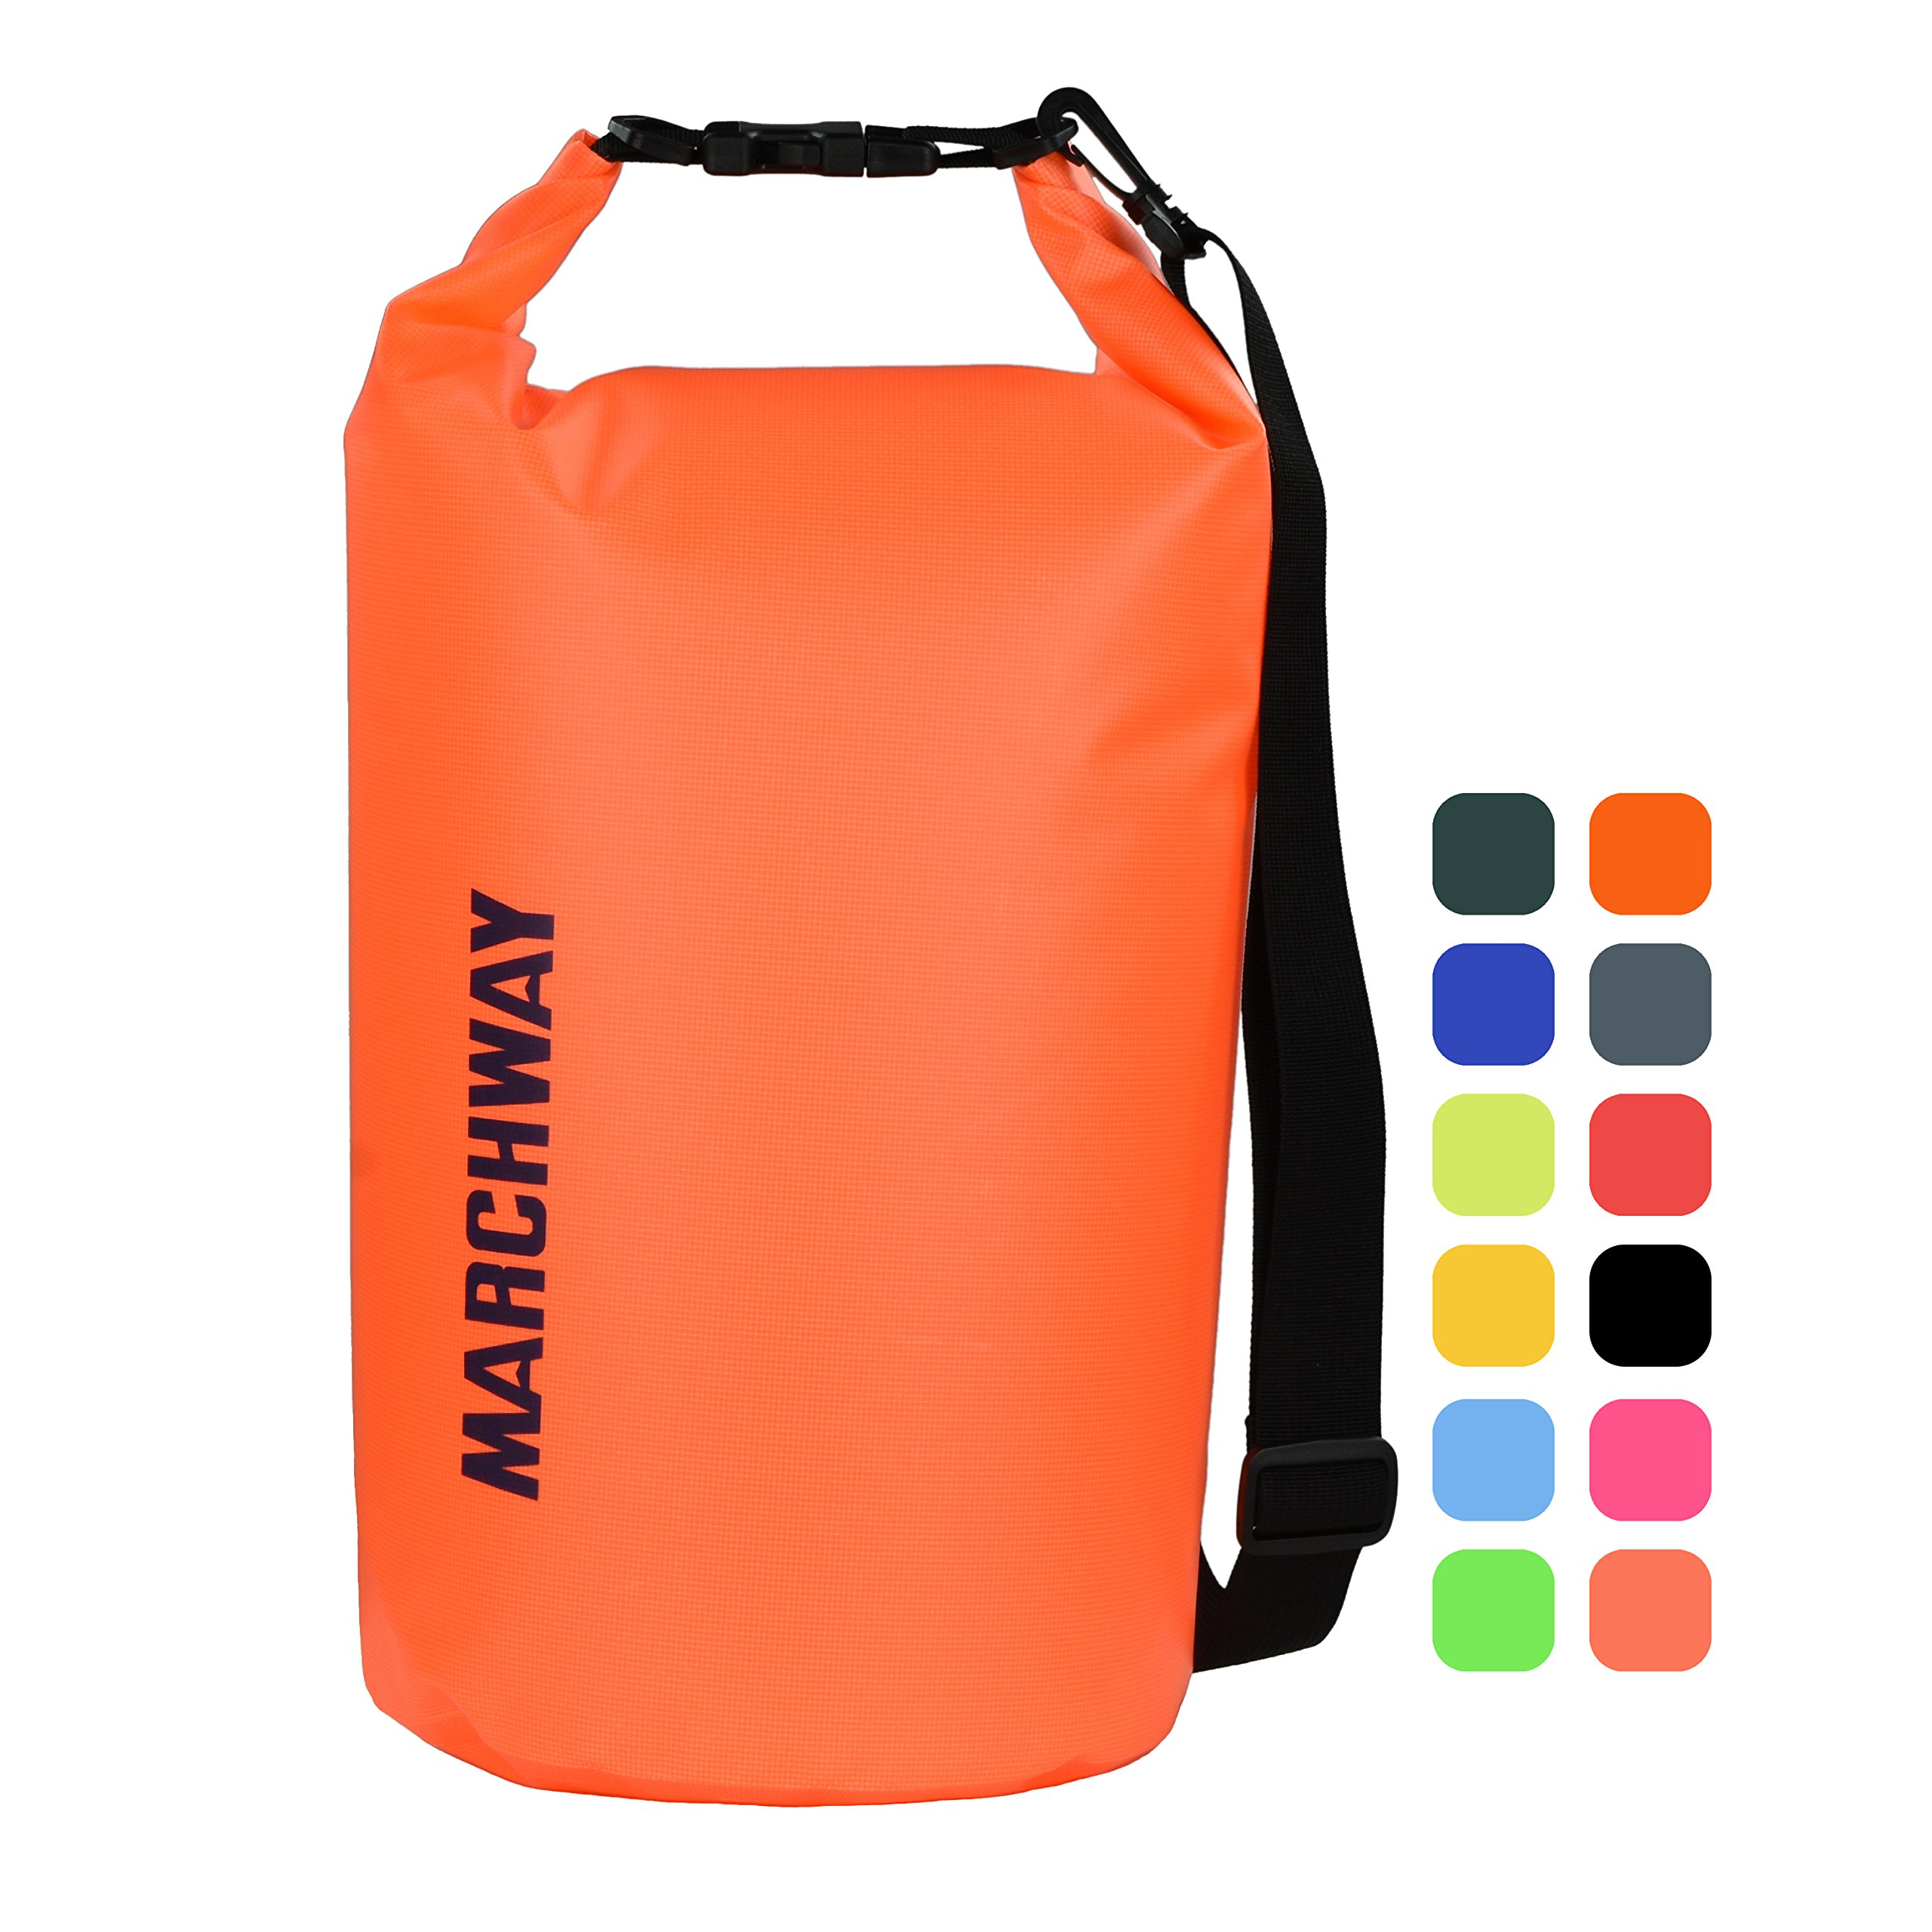 MARCHWAY Floating Waterproof Dry Bag 5L/10L/20L/30L, Roll Top Sack Keeps Gear Dry for Kayaking, Rafting, Boating, Swimming, Camping, Hiking, Beach, Fishing (Orange, 30L) by MARCHWAY